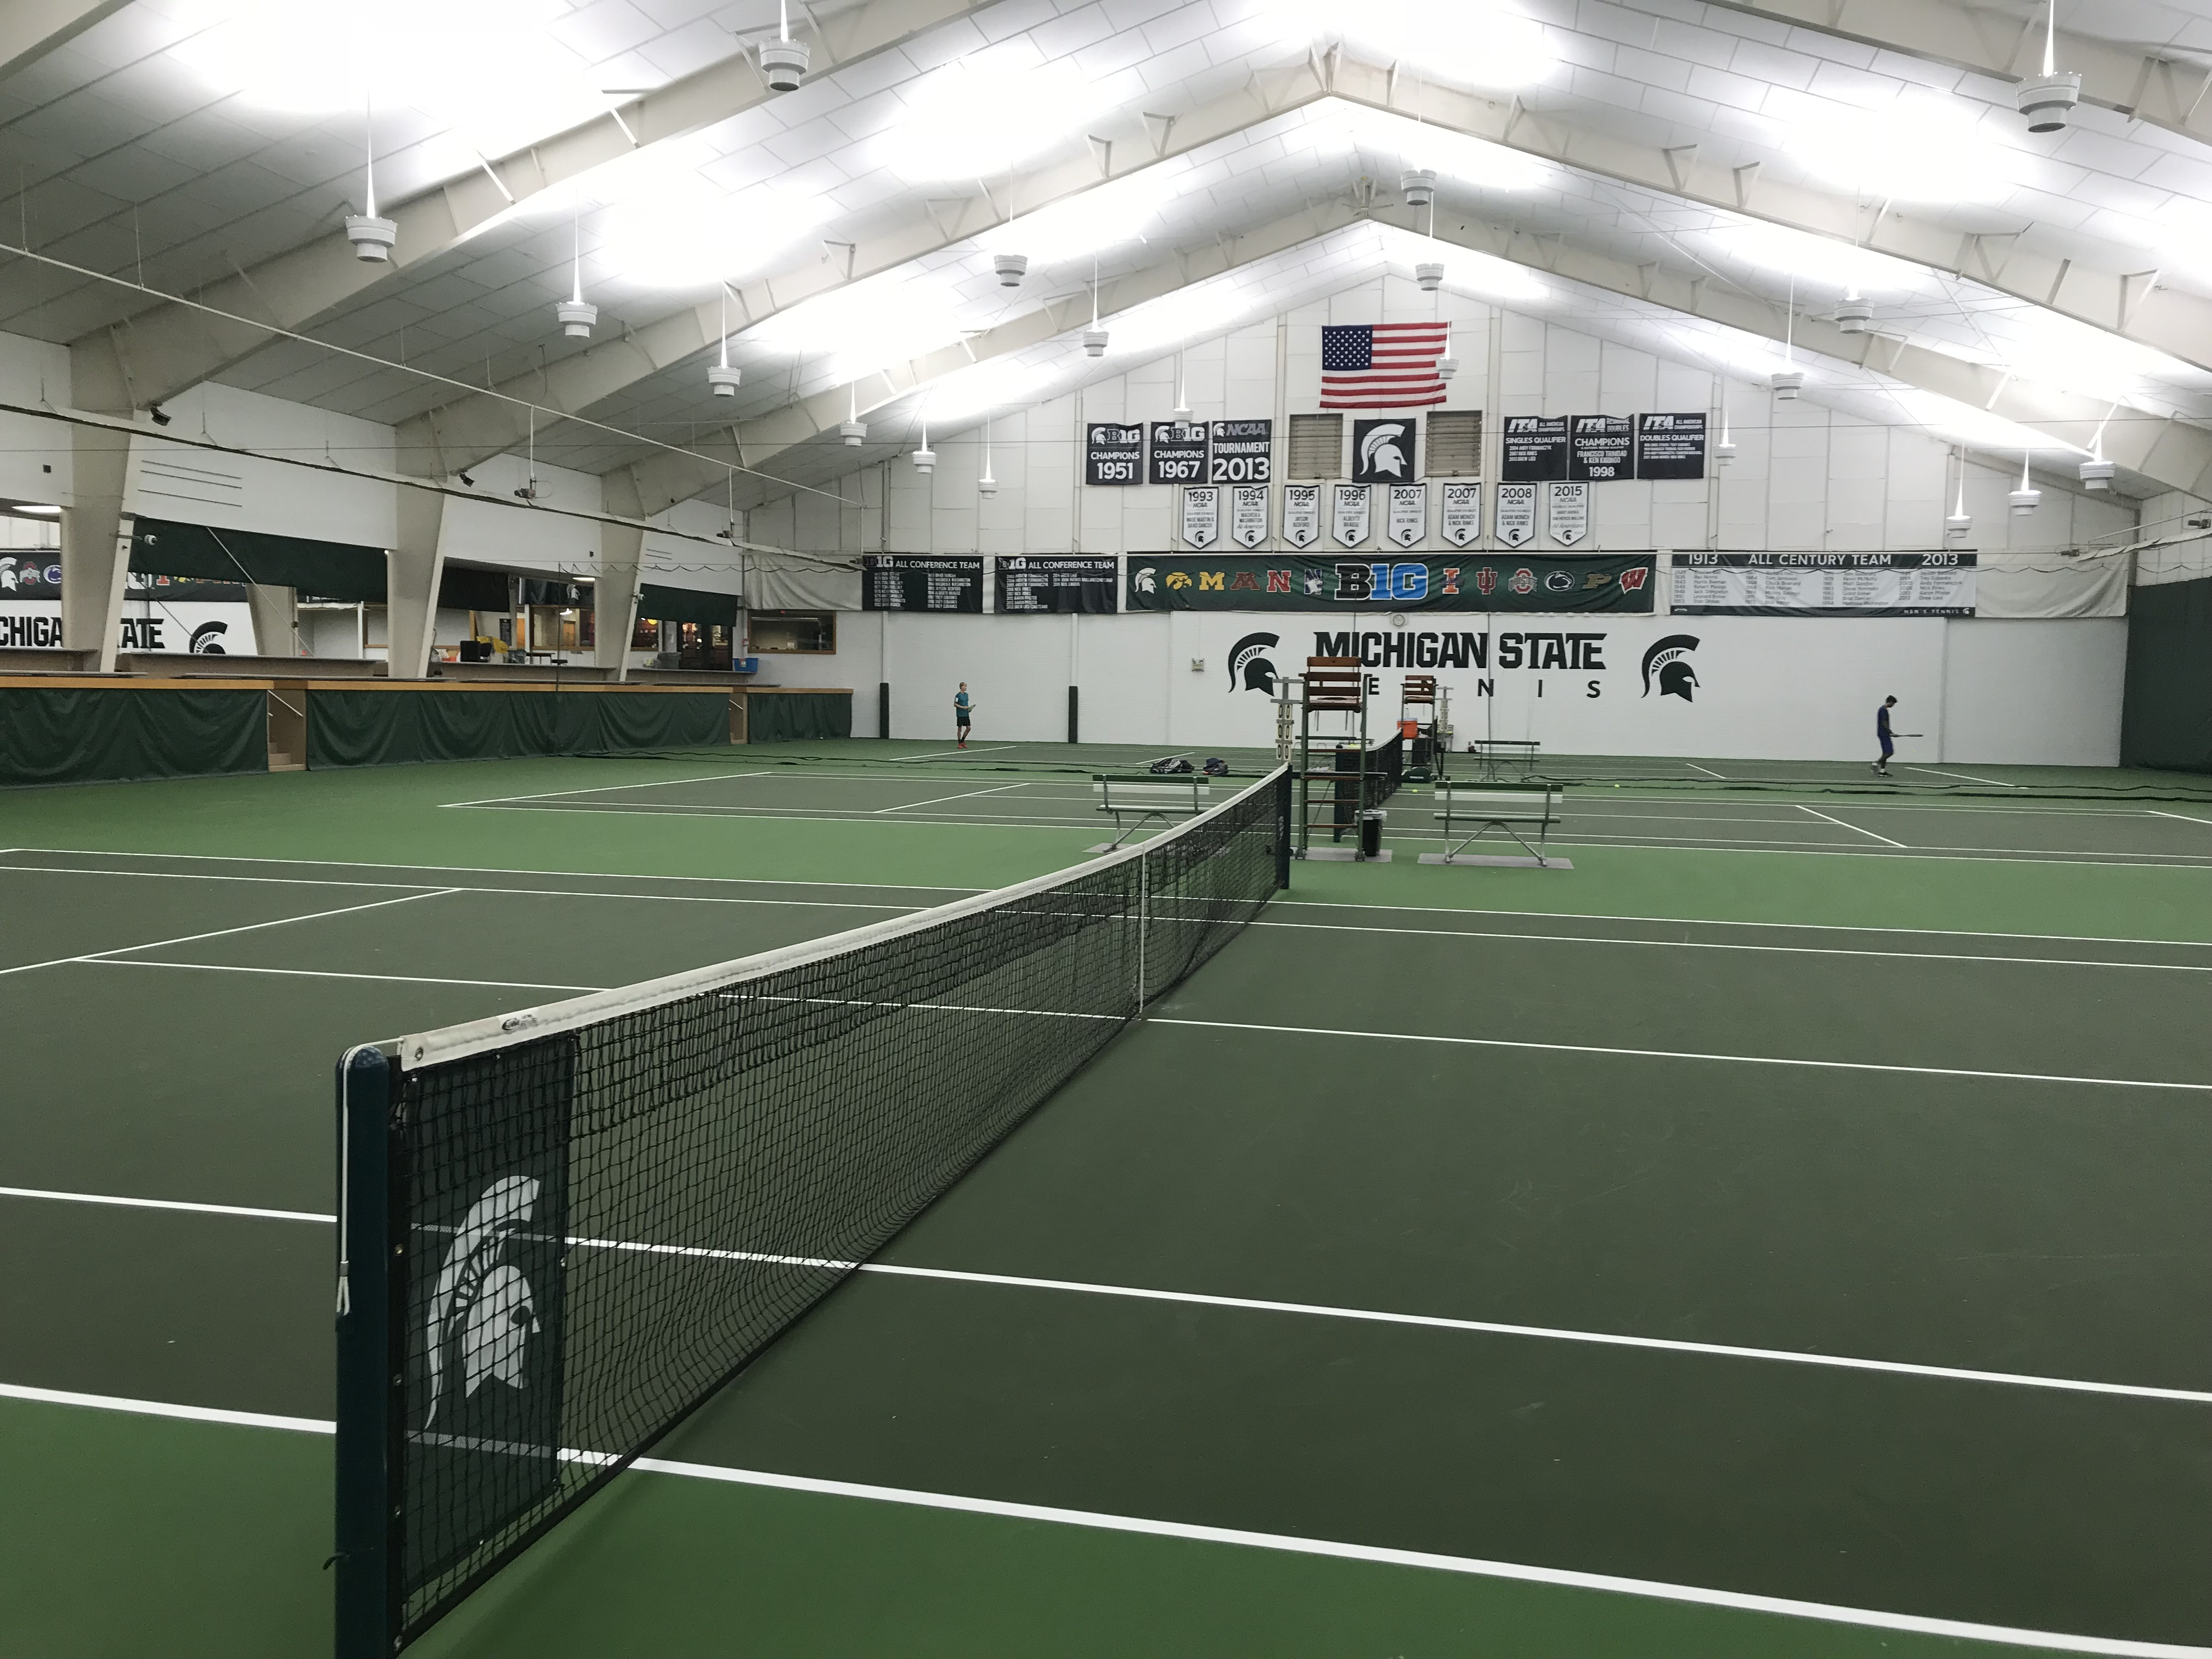 Michigan State University - LED Tennis Lights - 50% Energy Savings - Utility Rebate